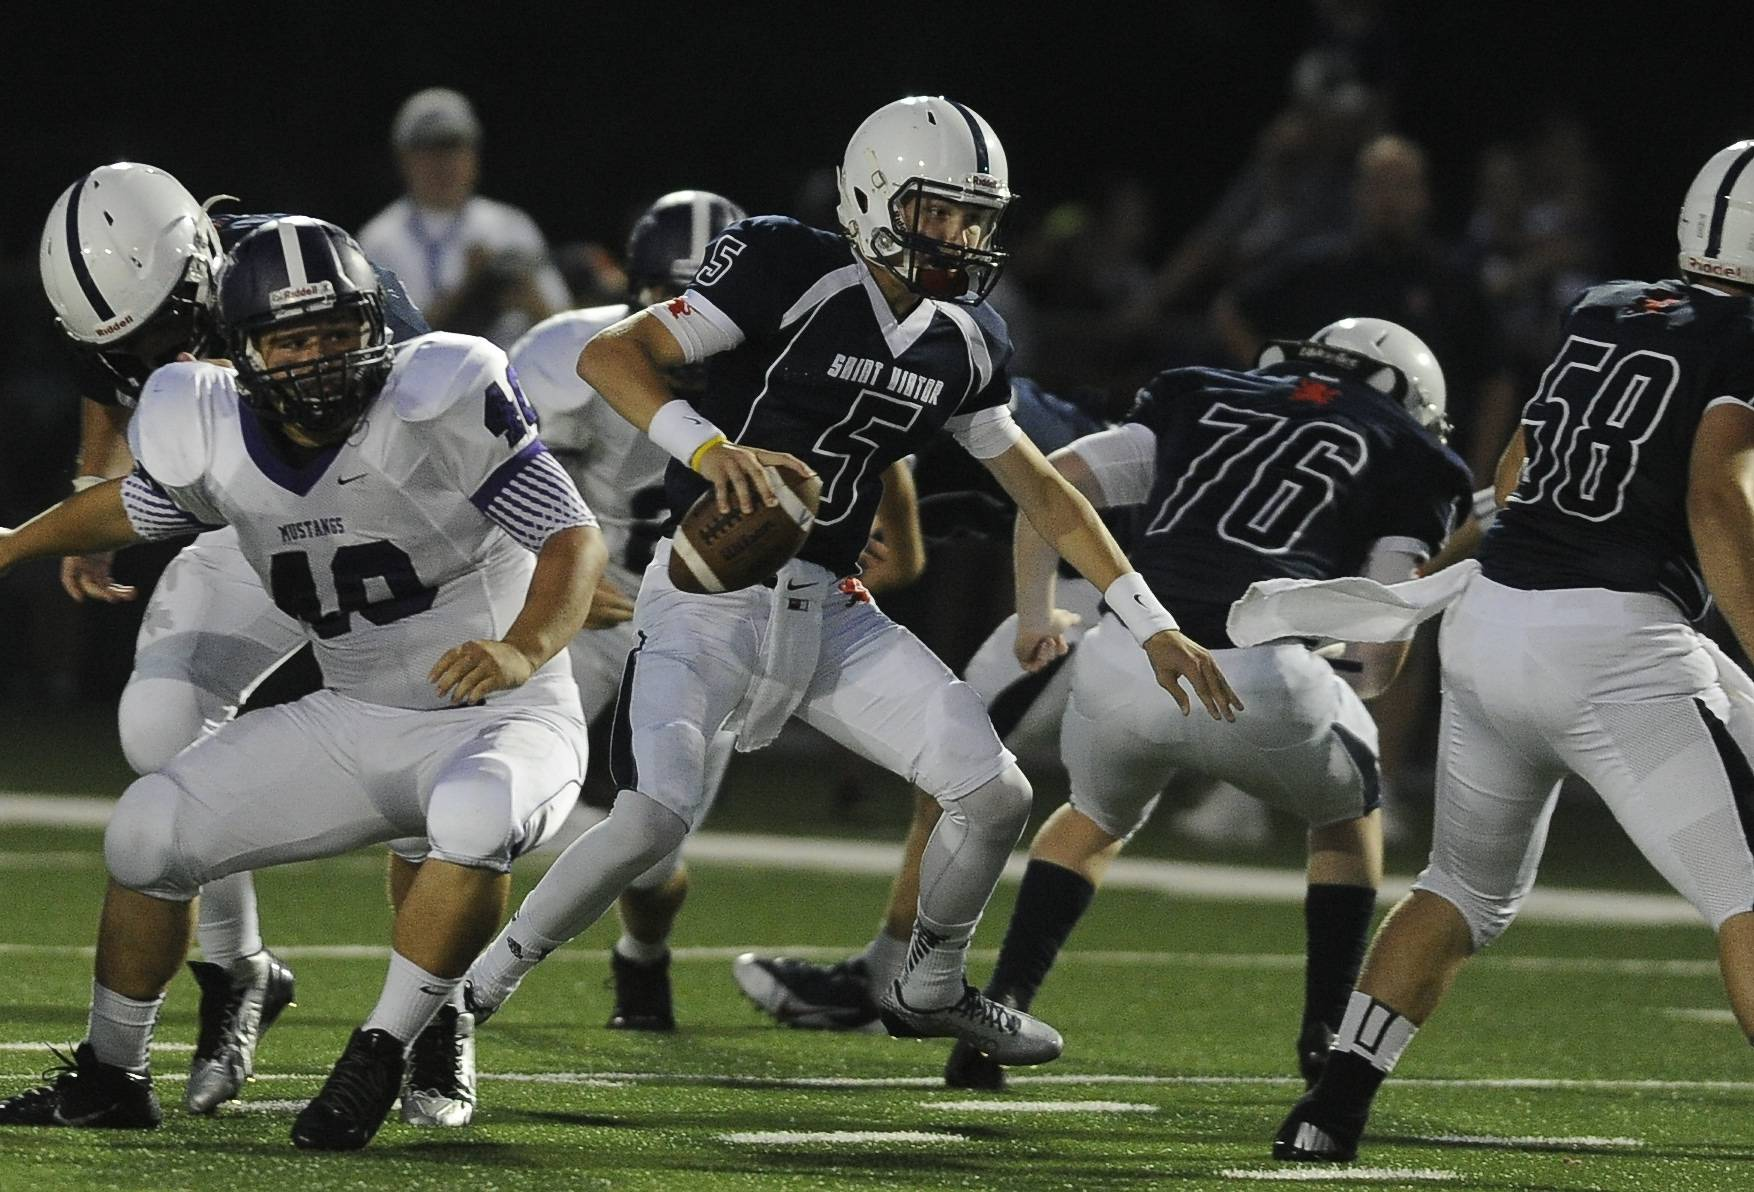 Week -1- Photos from the Rolling Meadows vs. St. Viator football game on Friday, Aug. 29 in Arlington Heights.